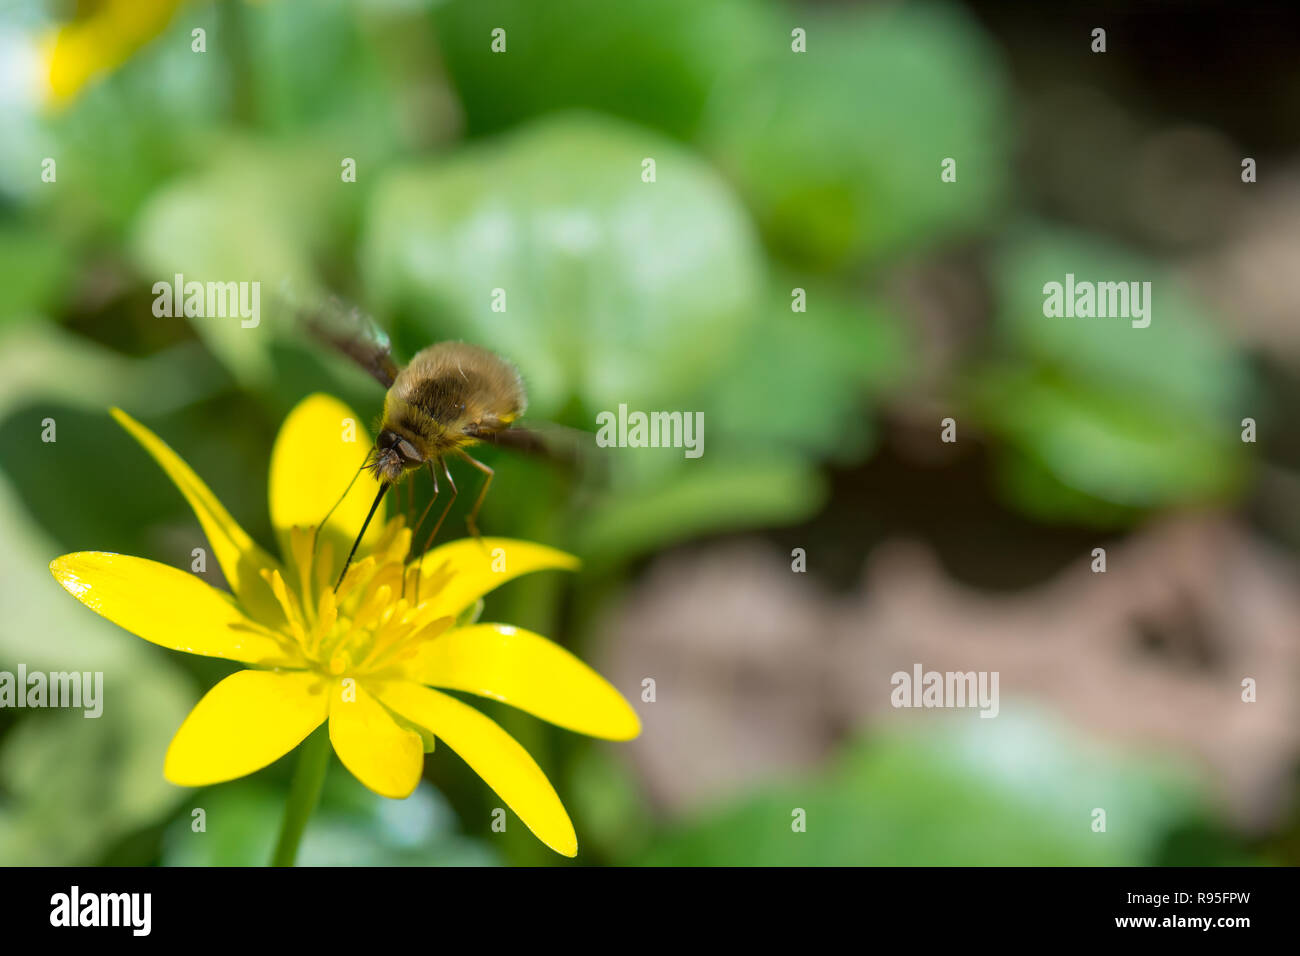 Strange insect feeding on nectar in yellow flower, with huge legs and proboscis. Animal is sitting collecting in sunny summer sunflower. - Stock Image